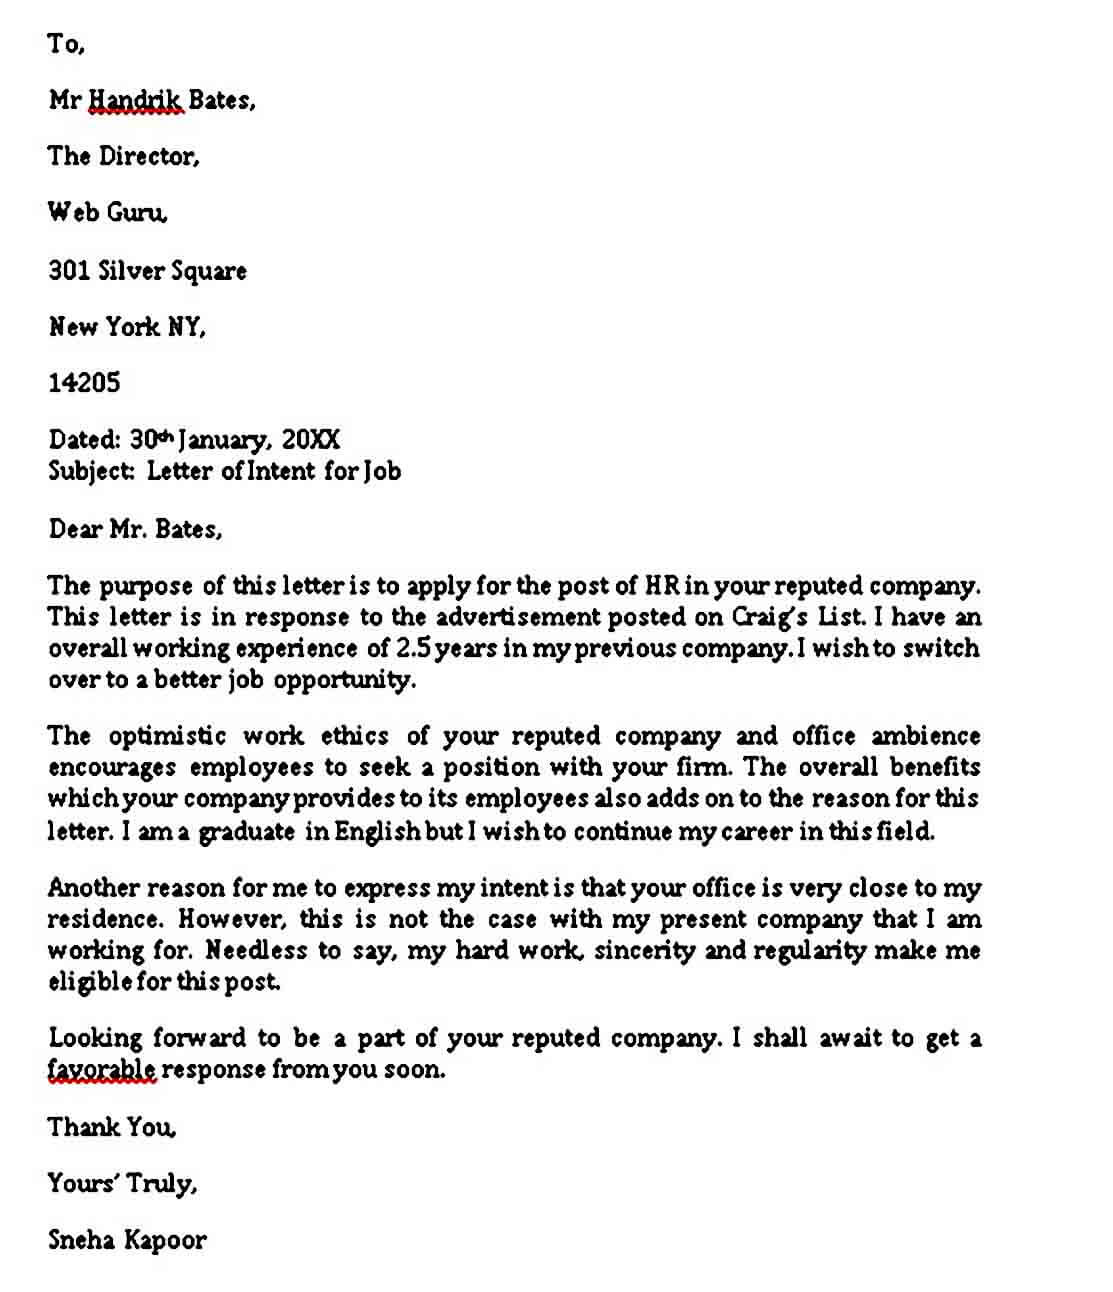 Letter Of Intent To Apply from moussyusa.com